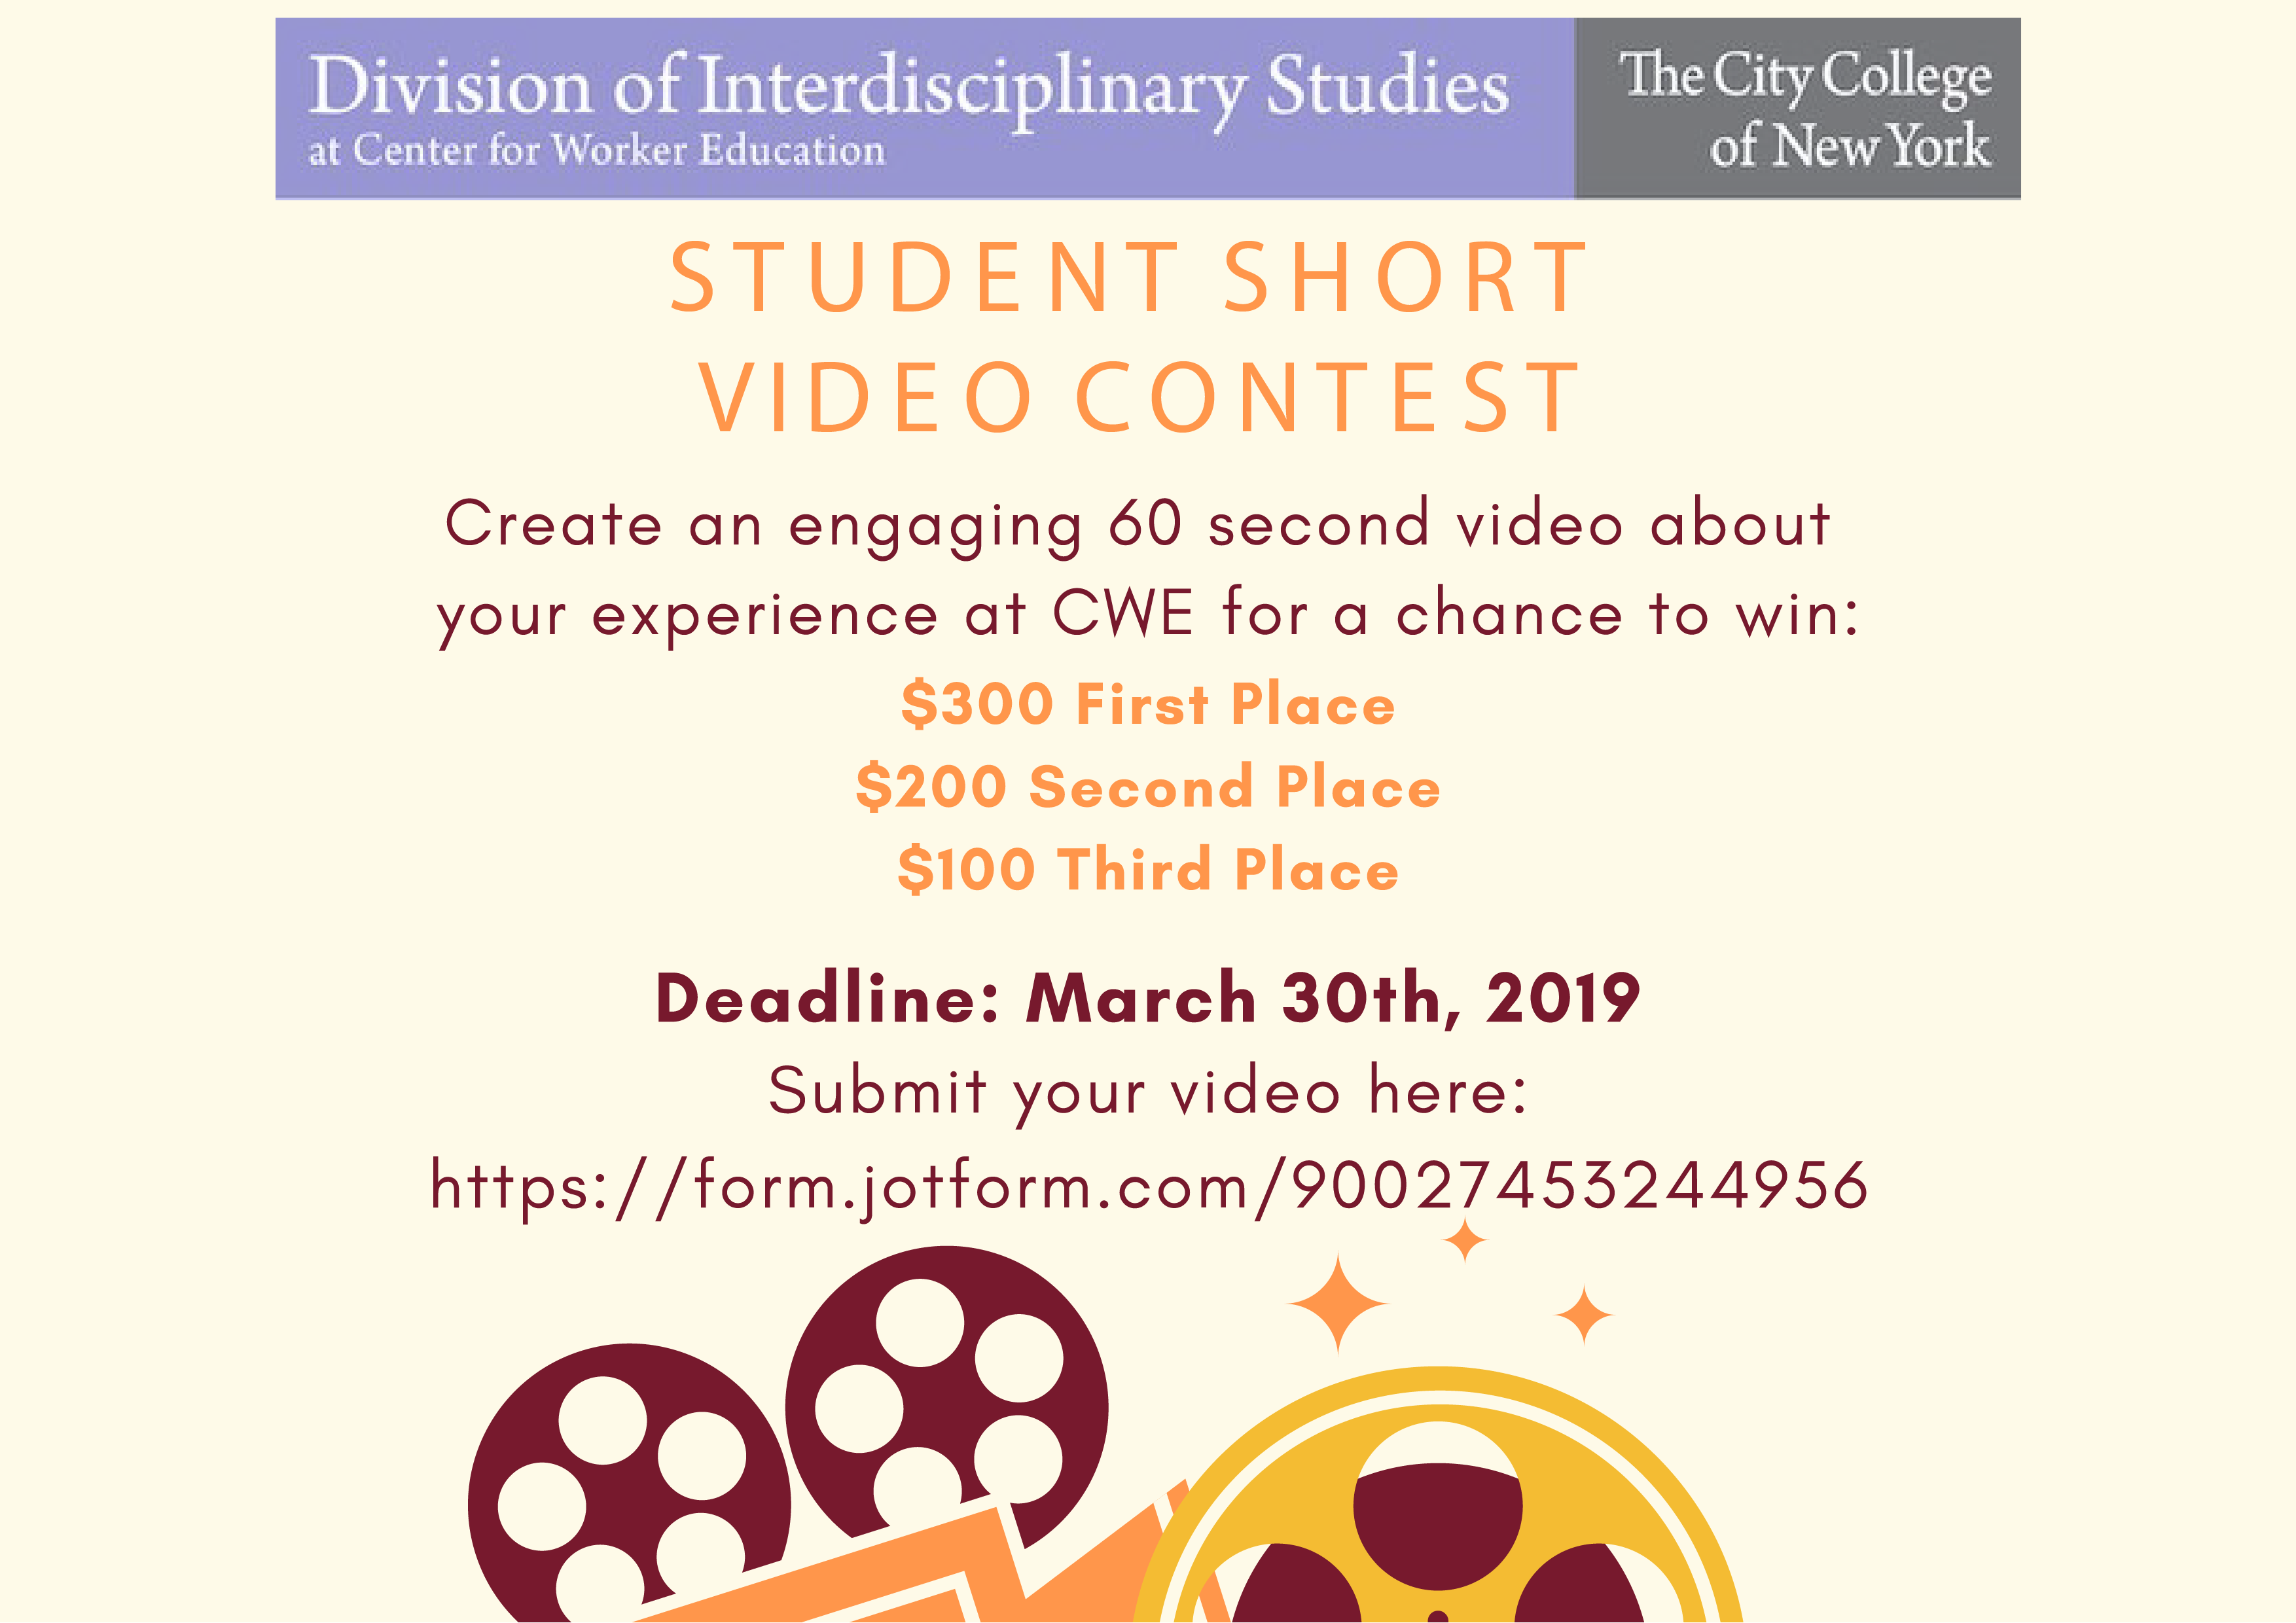 Create an engaging 60 second video about your experience at CWE for a chance to win